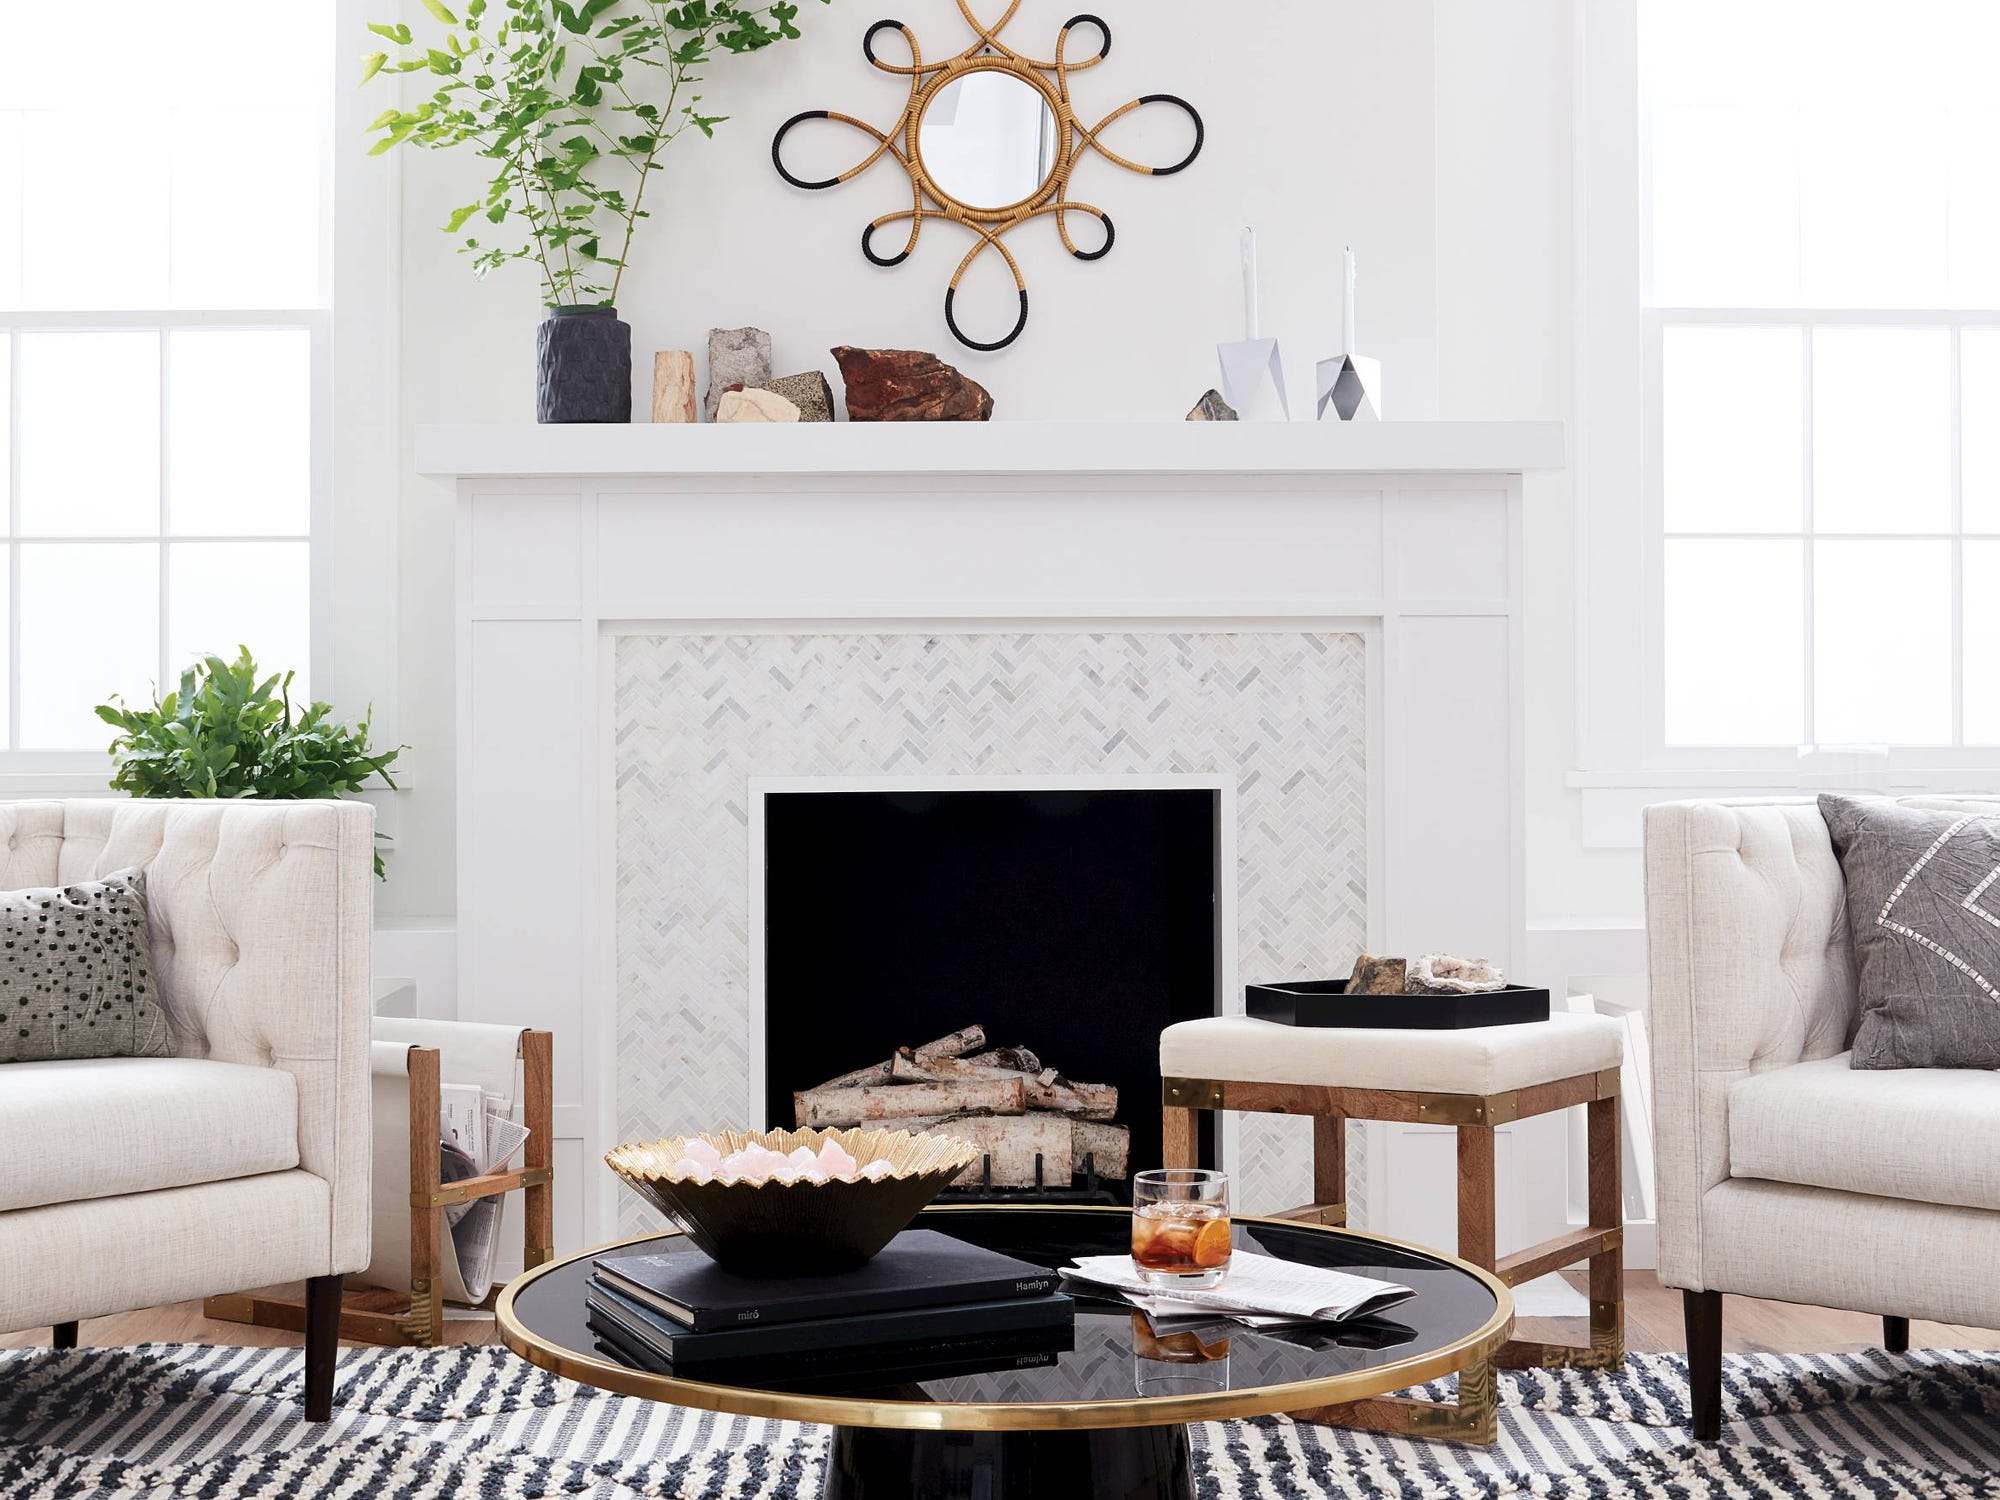 Target New Nate Berkus Collection - Cheap Home Decor